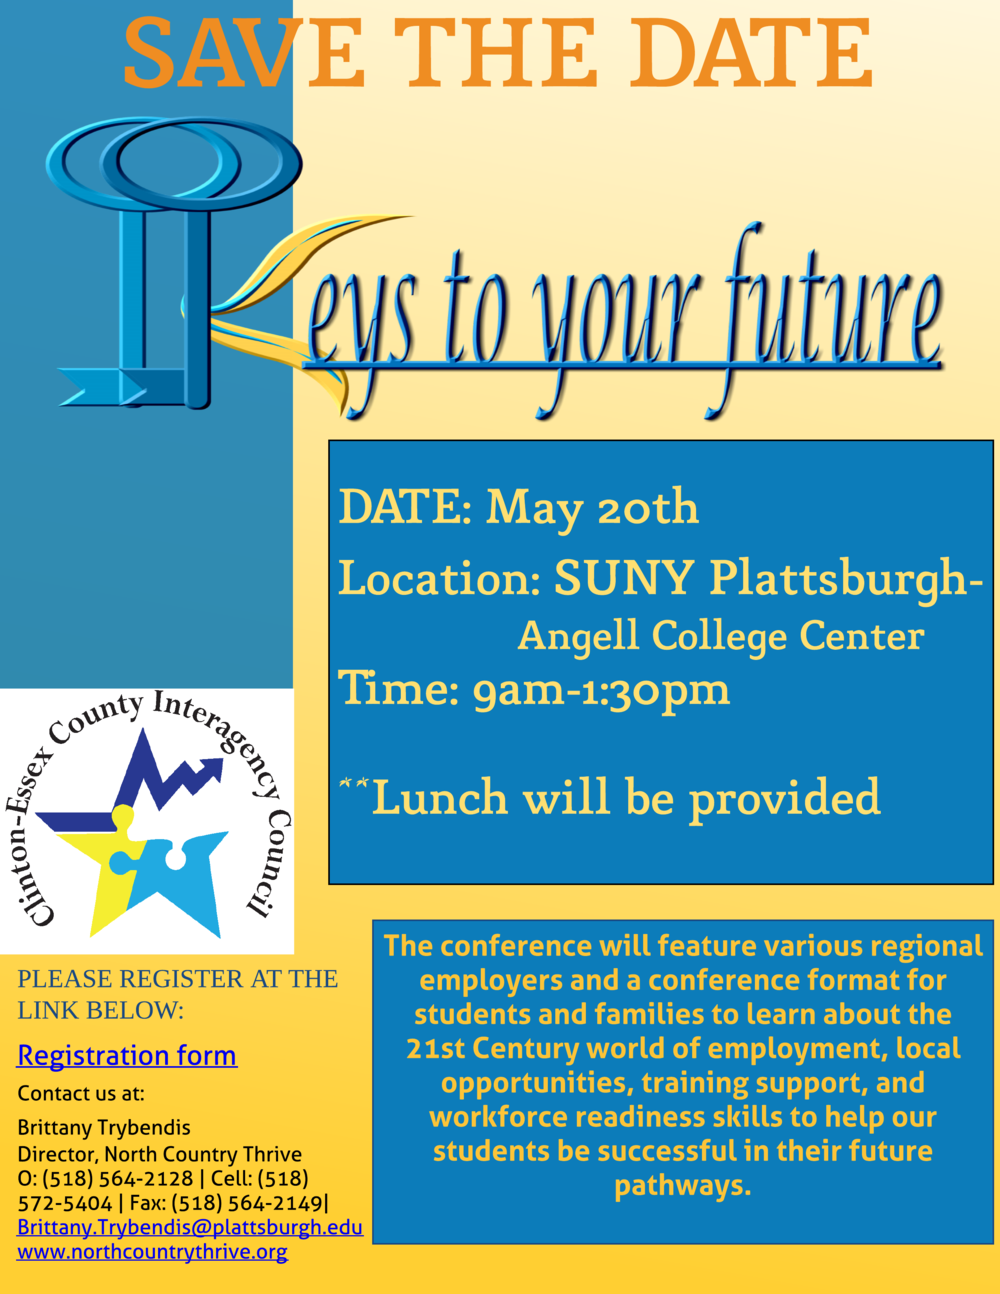 "The Clinton-Essex Interagency Council invites you to the ""Keys to Your Future"" Conference.  The target audience is high school students who are within two years of exiting school and have barriers to employment.  Students will have the opportunity to learn about and discuss various aspects of the world of work including self-advocacy, job interviewing, developing work skills and improving self-confidence.  The conference will feature representatives from area agencies and employers who will offer students, teachers and families the chance to learn about 21st Century workforce readiness.  Let's all work together to help our students be successful in their future pathways. We hope you will join us on Friday, May 20th at SUNY Plattsburgh Angell Center to discuss and learn about student self-empowerment as it relates to the workforce.  Students will be welcomed by a keynote address from Thomas Bull, a local motivational speaker who will be speaking on self-empowerment and how to be the best YOU!  REGISTER HERE for your students."